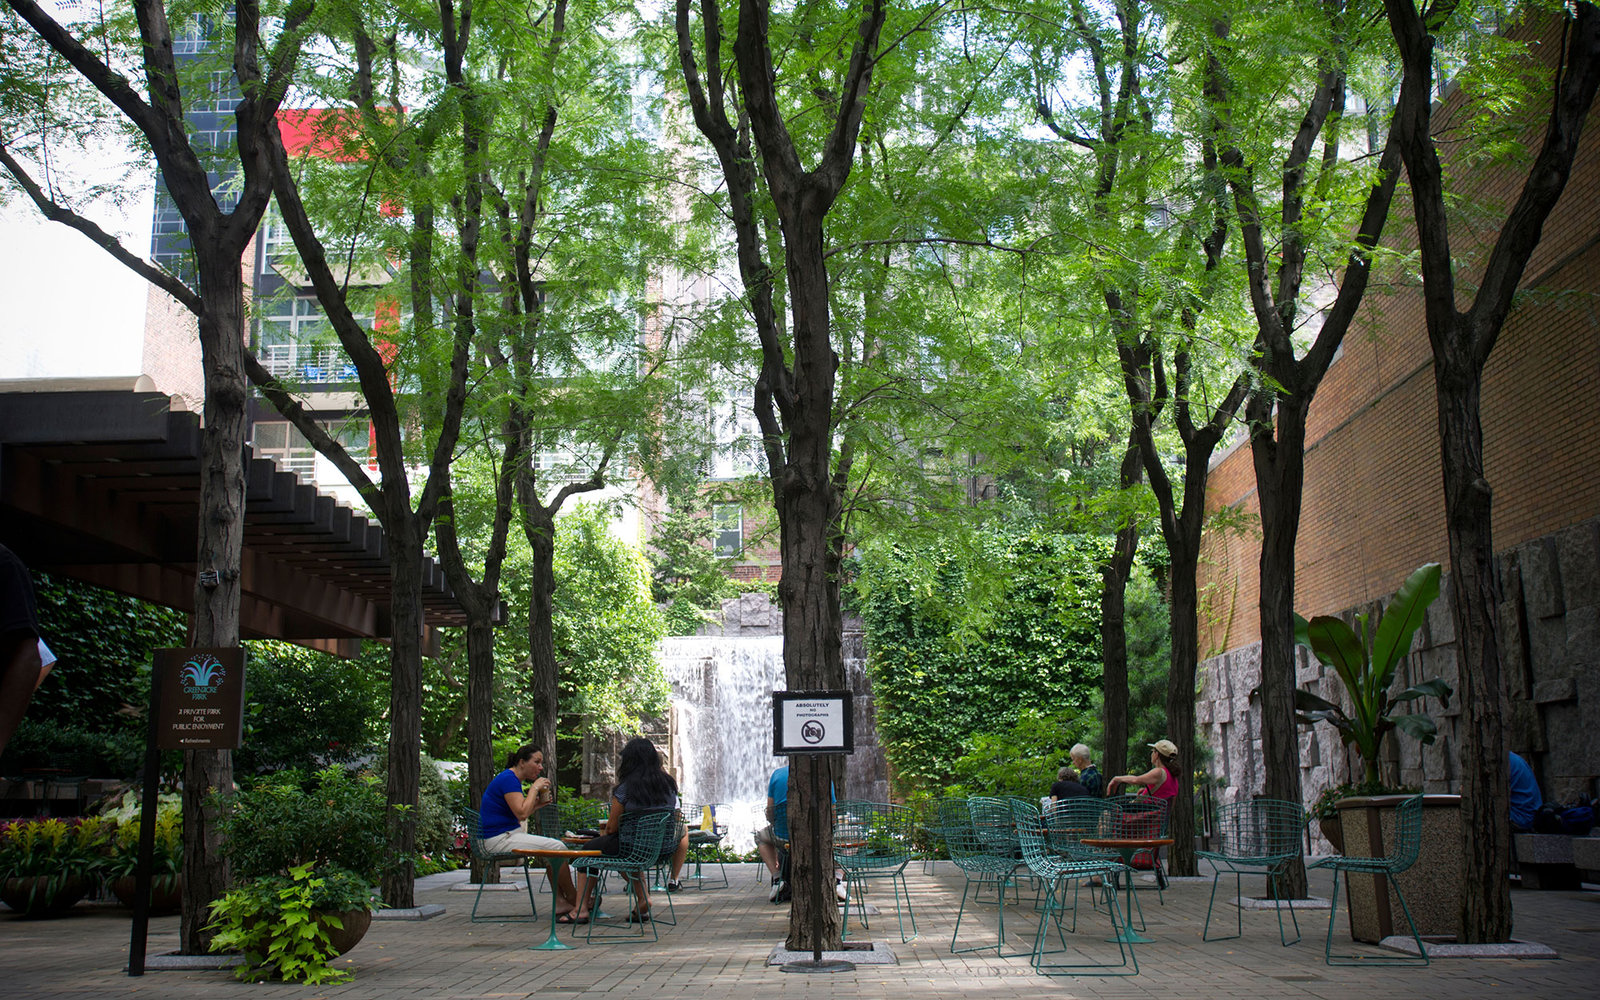 C63WAH Greenacre Park, a vest pocket park on East 51 St. in Midtown in New York on Wednesday, August 10, 2011. (© Frances M. Roberts)